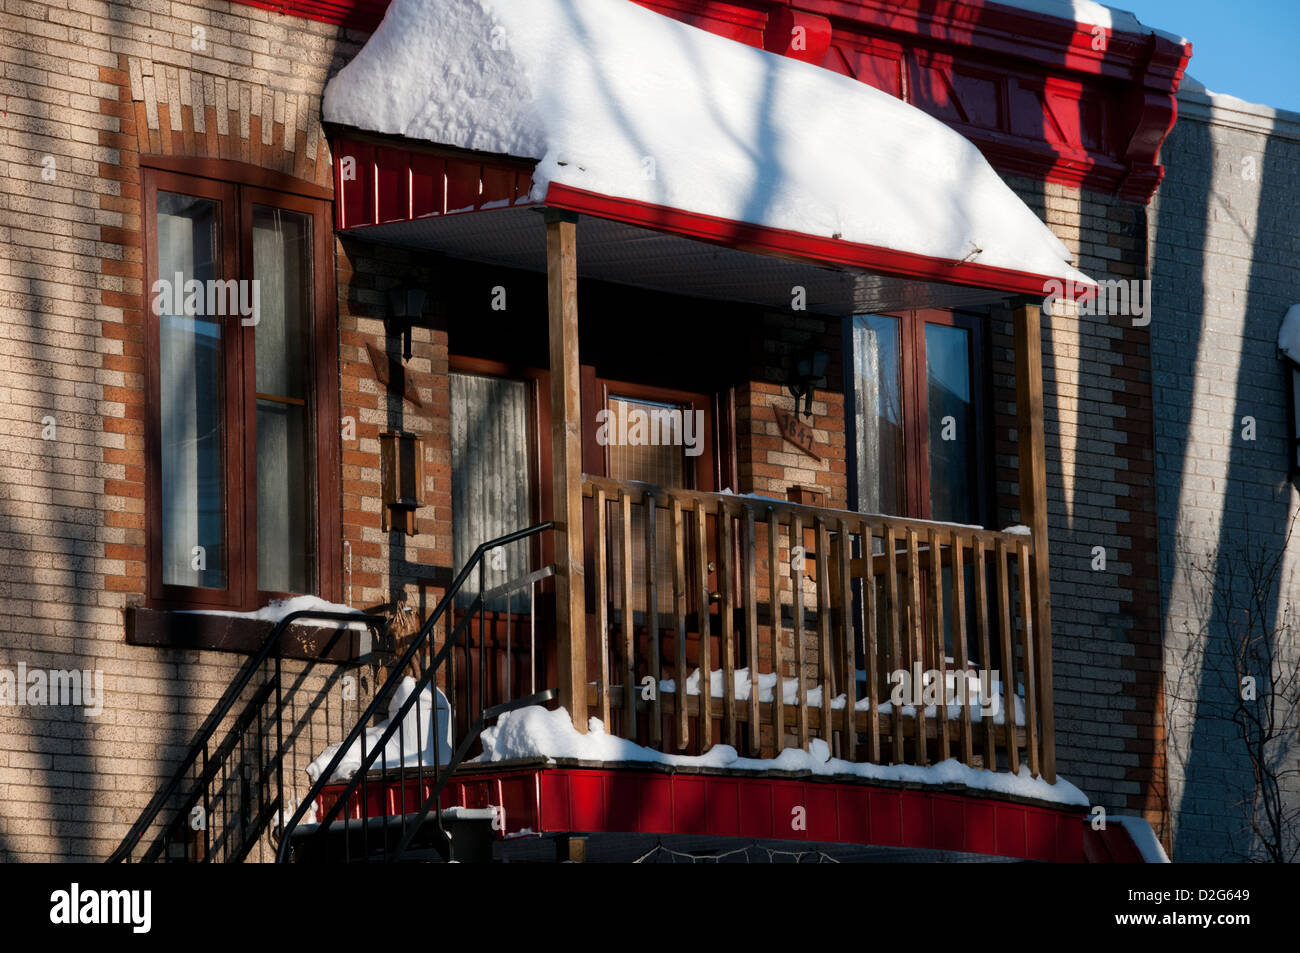 Balcony of a house covered in snow Montreal Canada - Stock Image